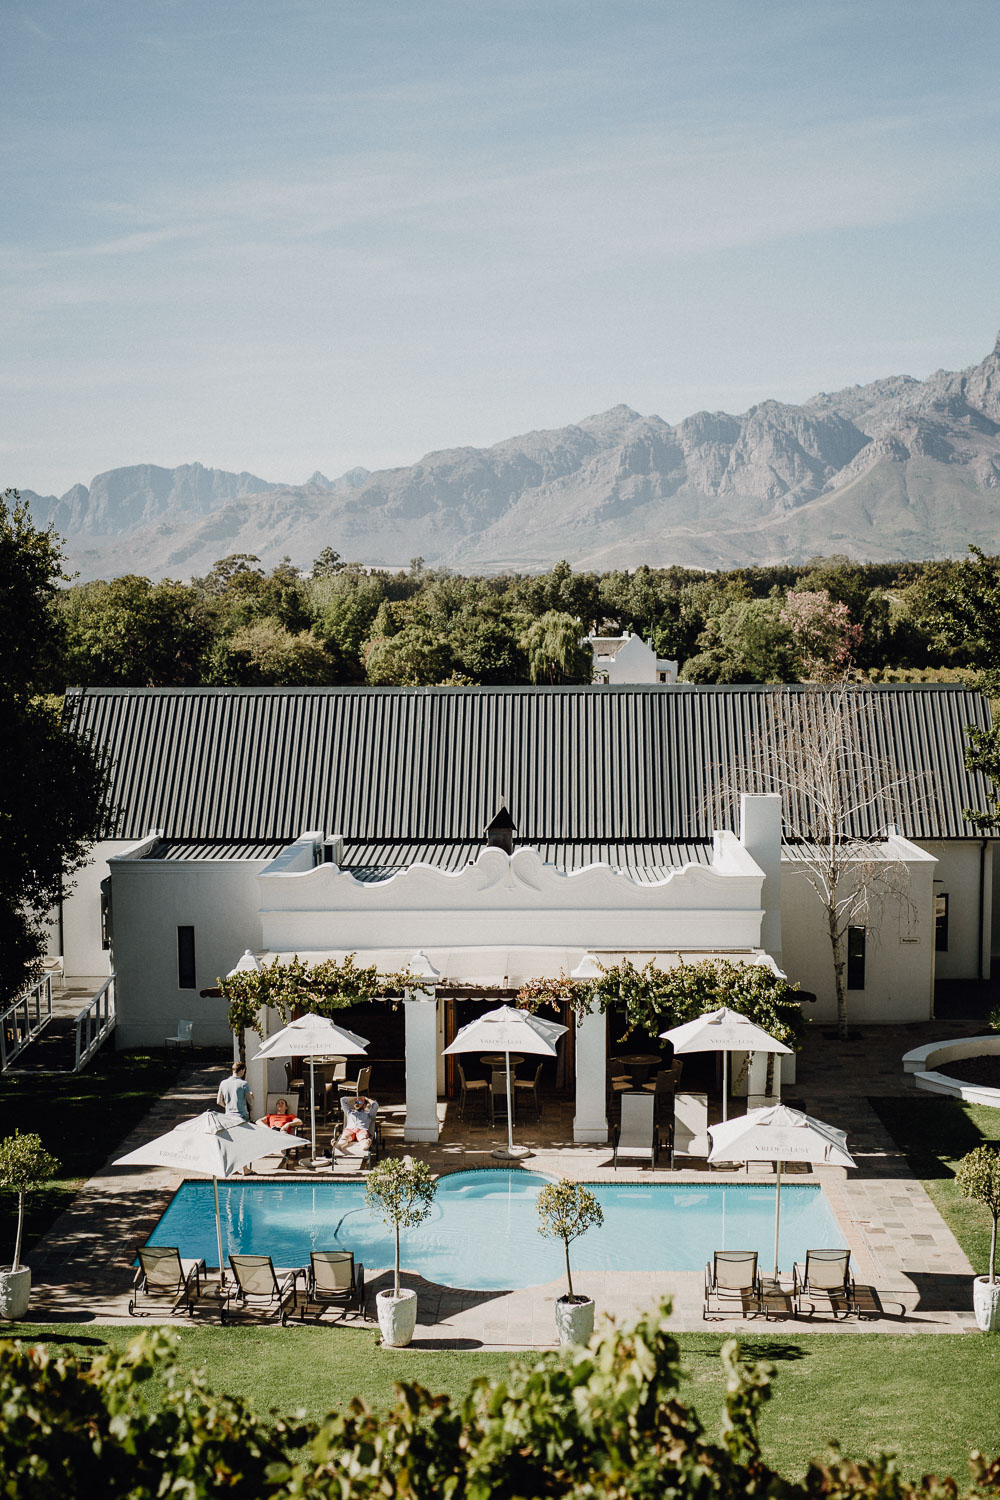 raissa simon photography destination wedding capetown vrede en lust wine estate 001 - Nienke + Tim